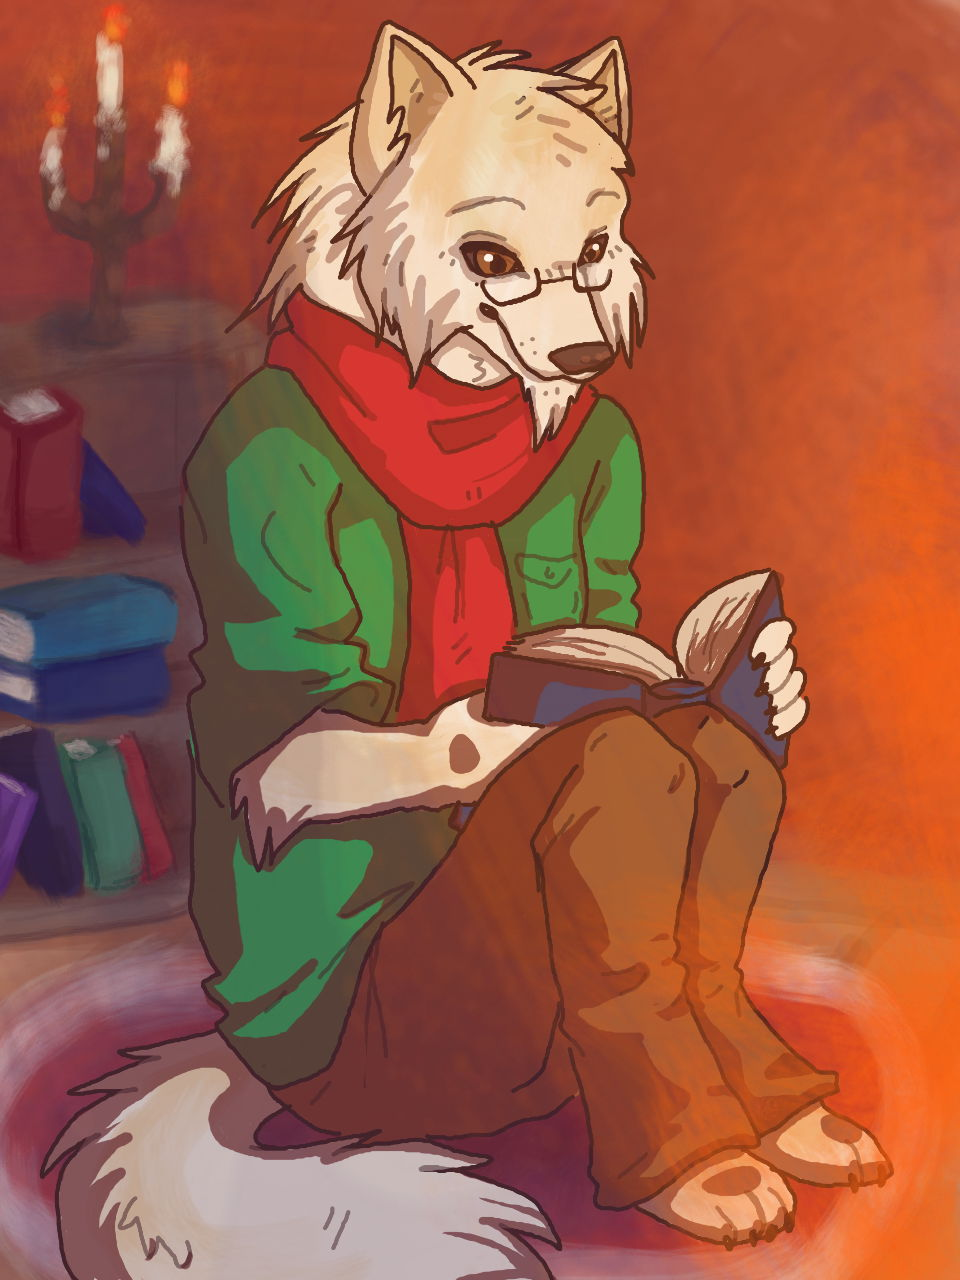 Most recent image: Fireside Story (commission)